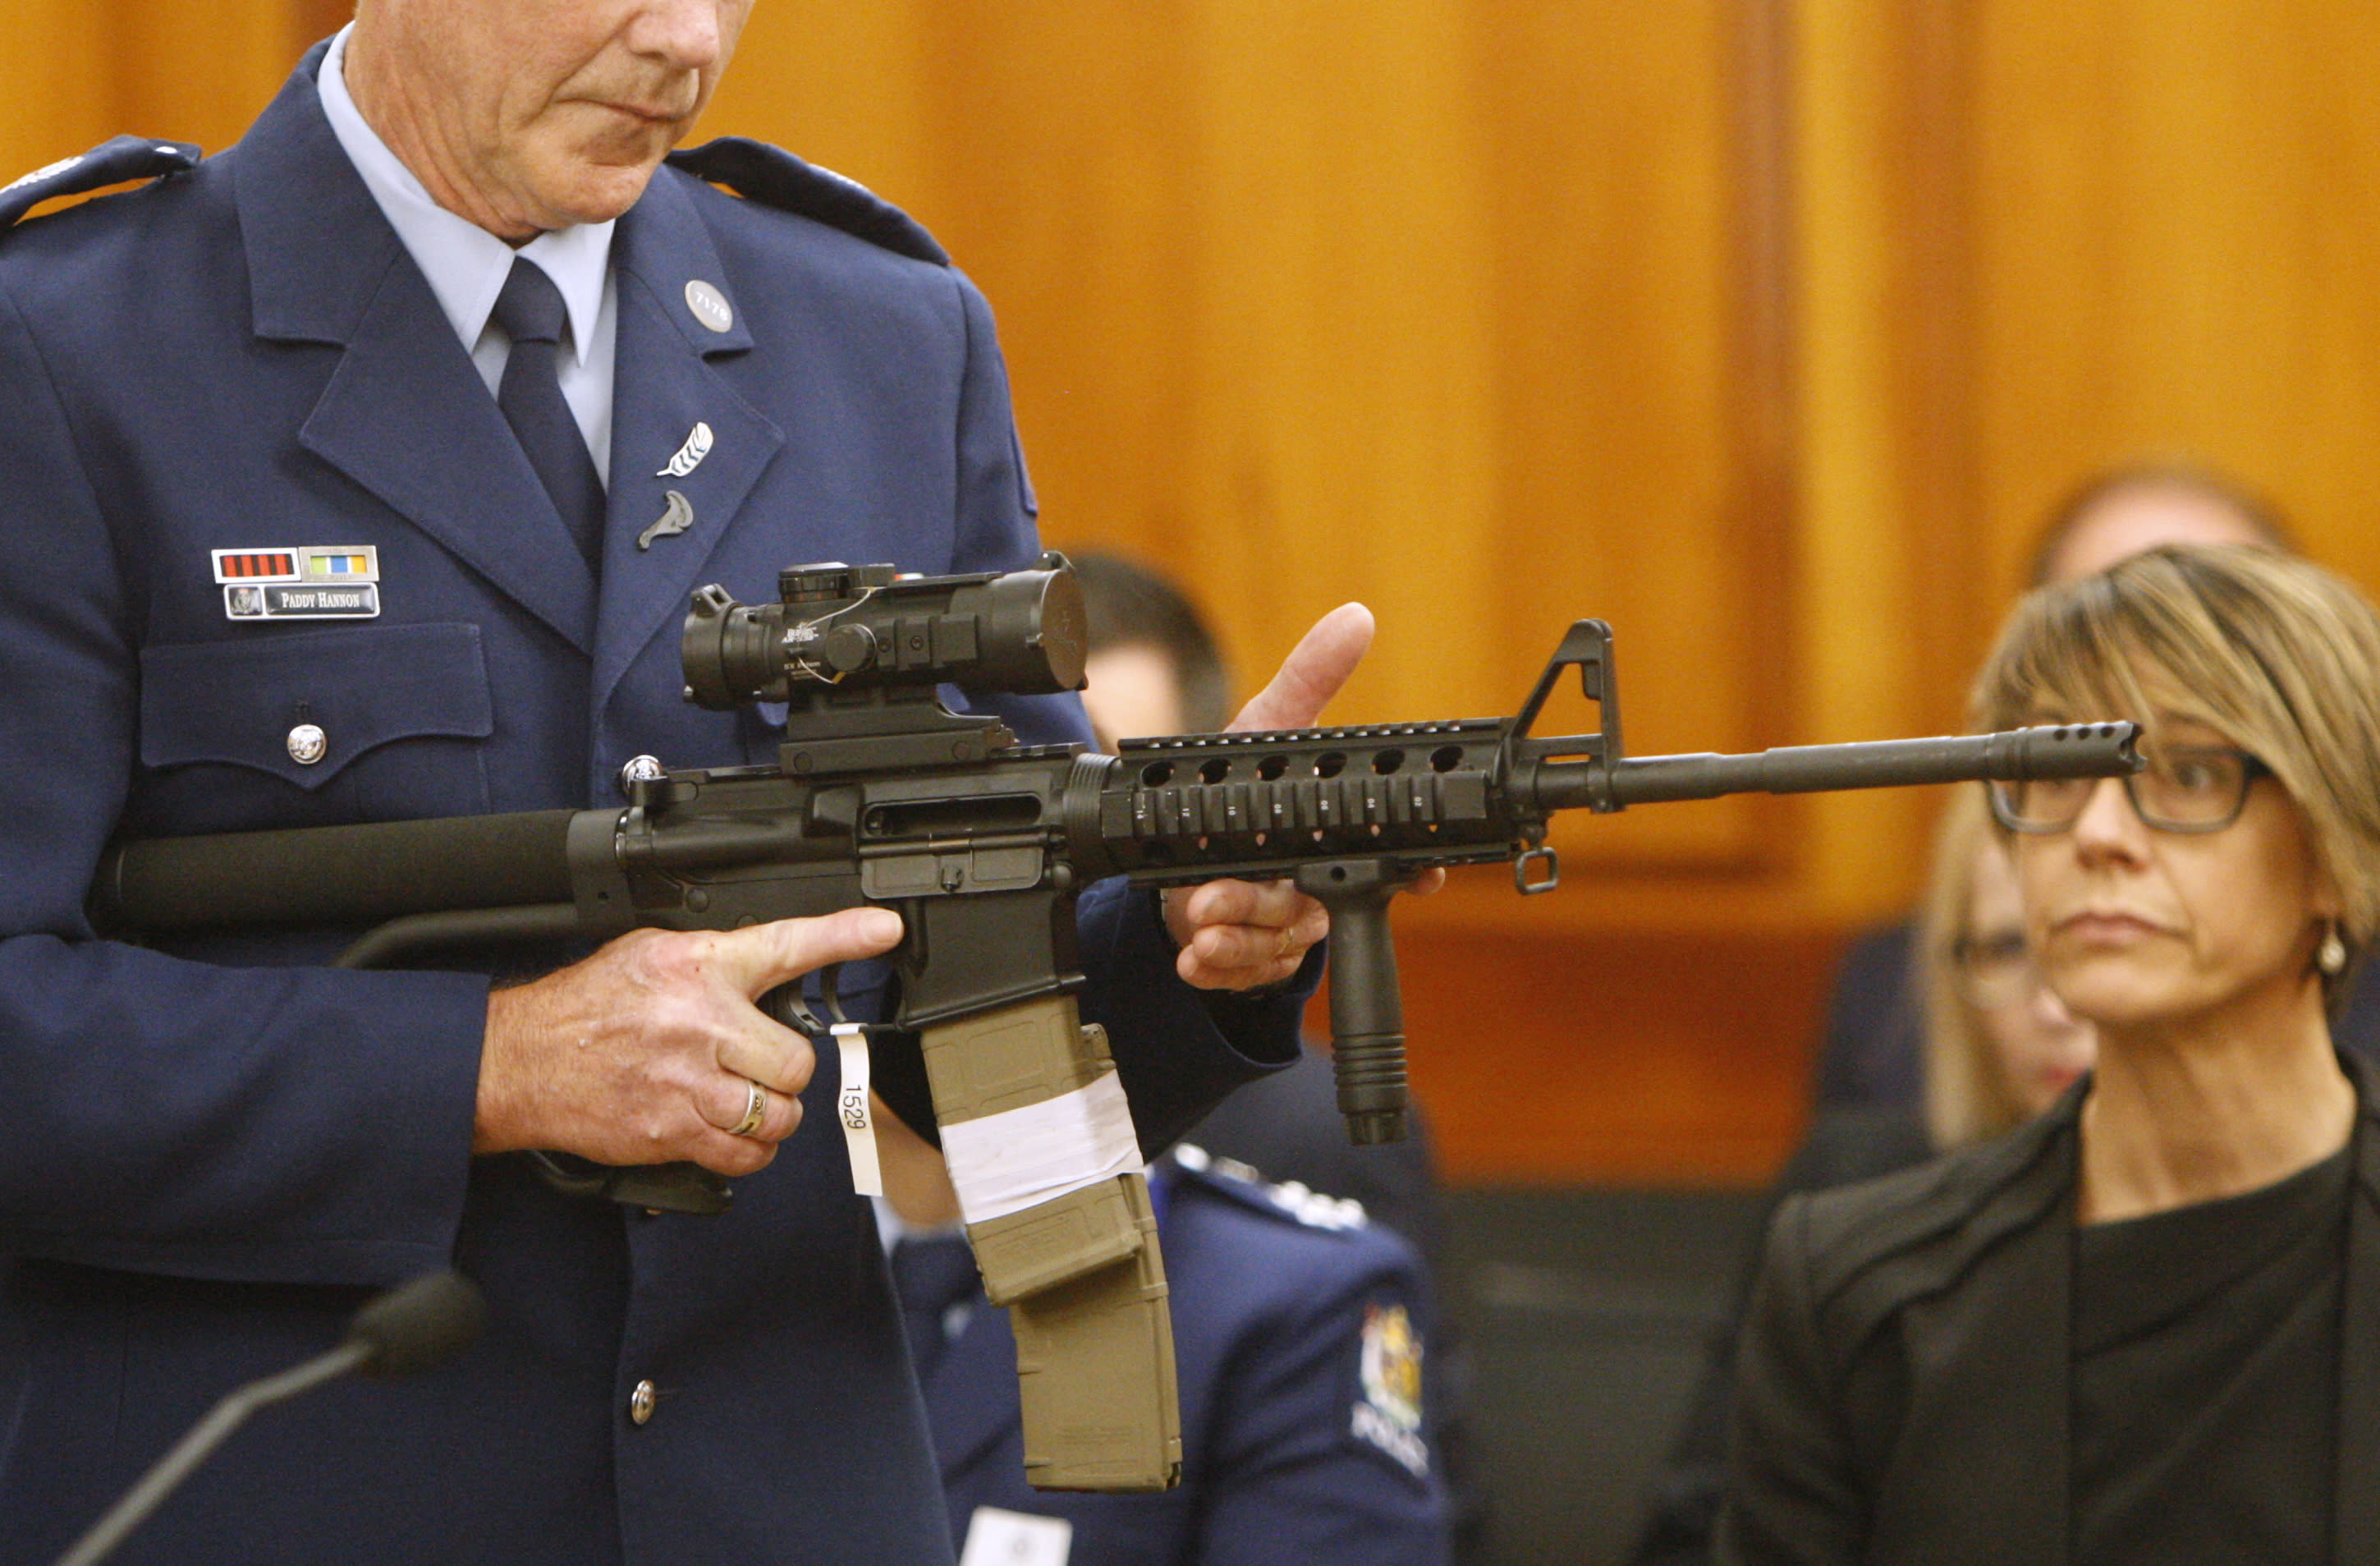 New Zealand holds first gun buyback event in wake of Christchurch shooting